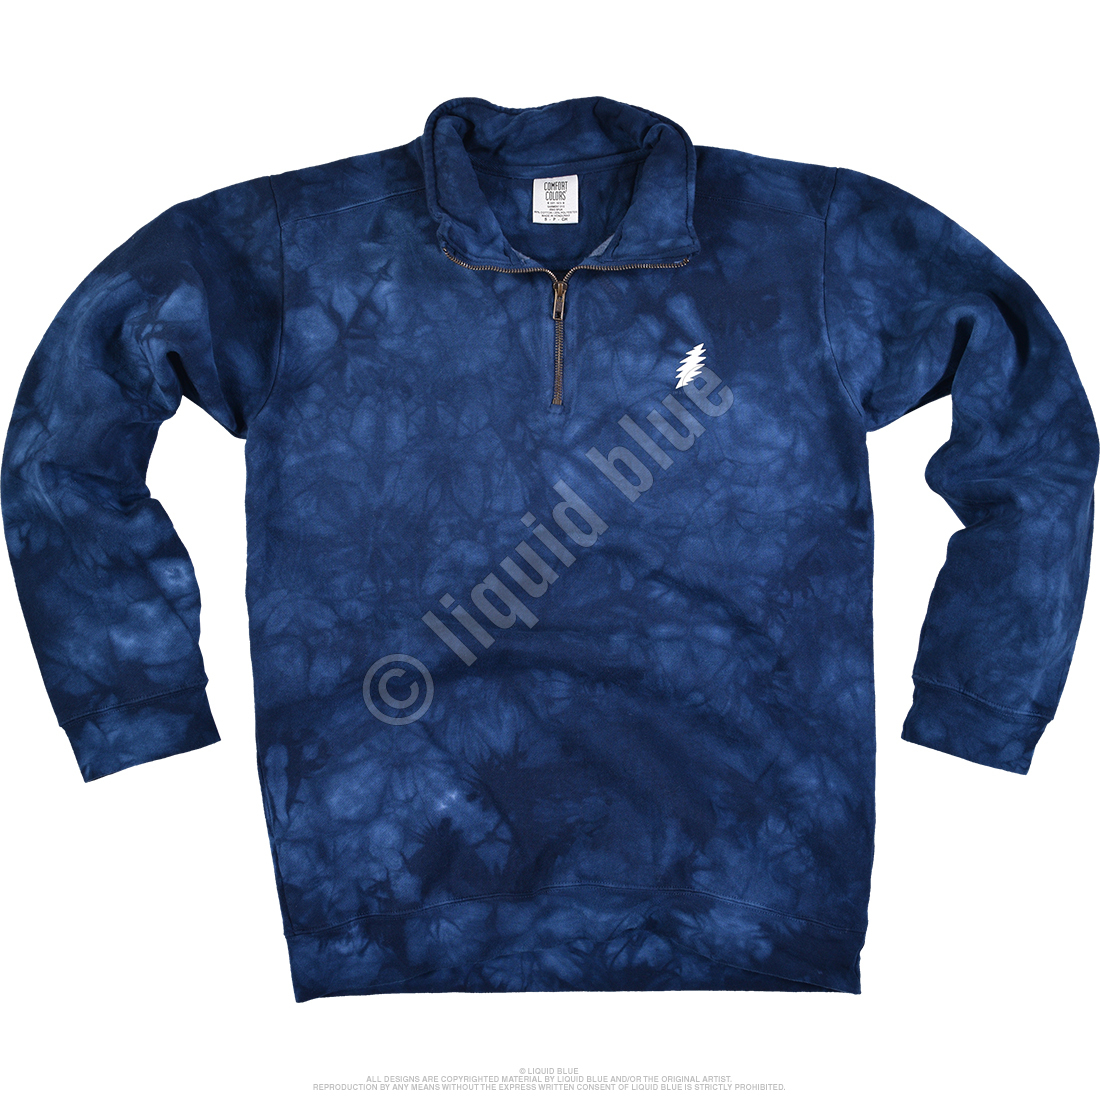 Bolt ¼ Zip Pullover Comfort Colors Tie-Dye Sweatshirt